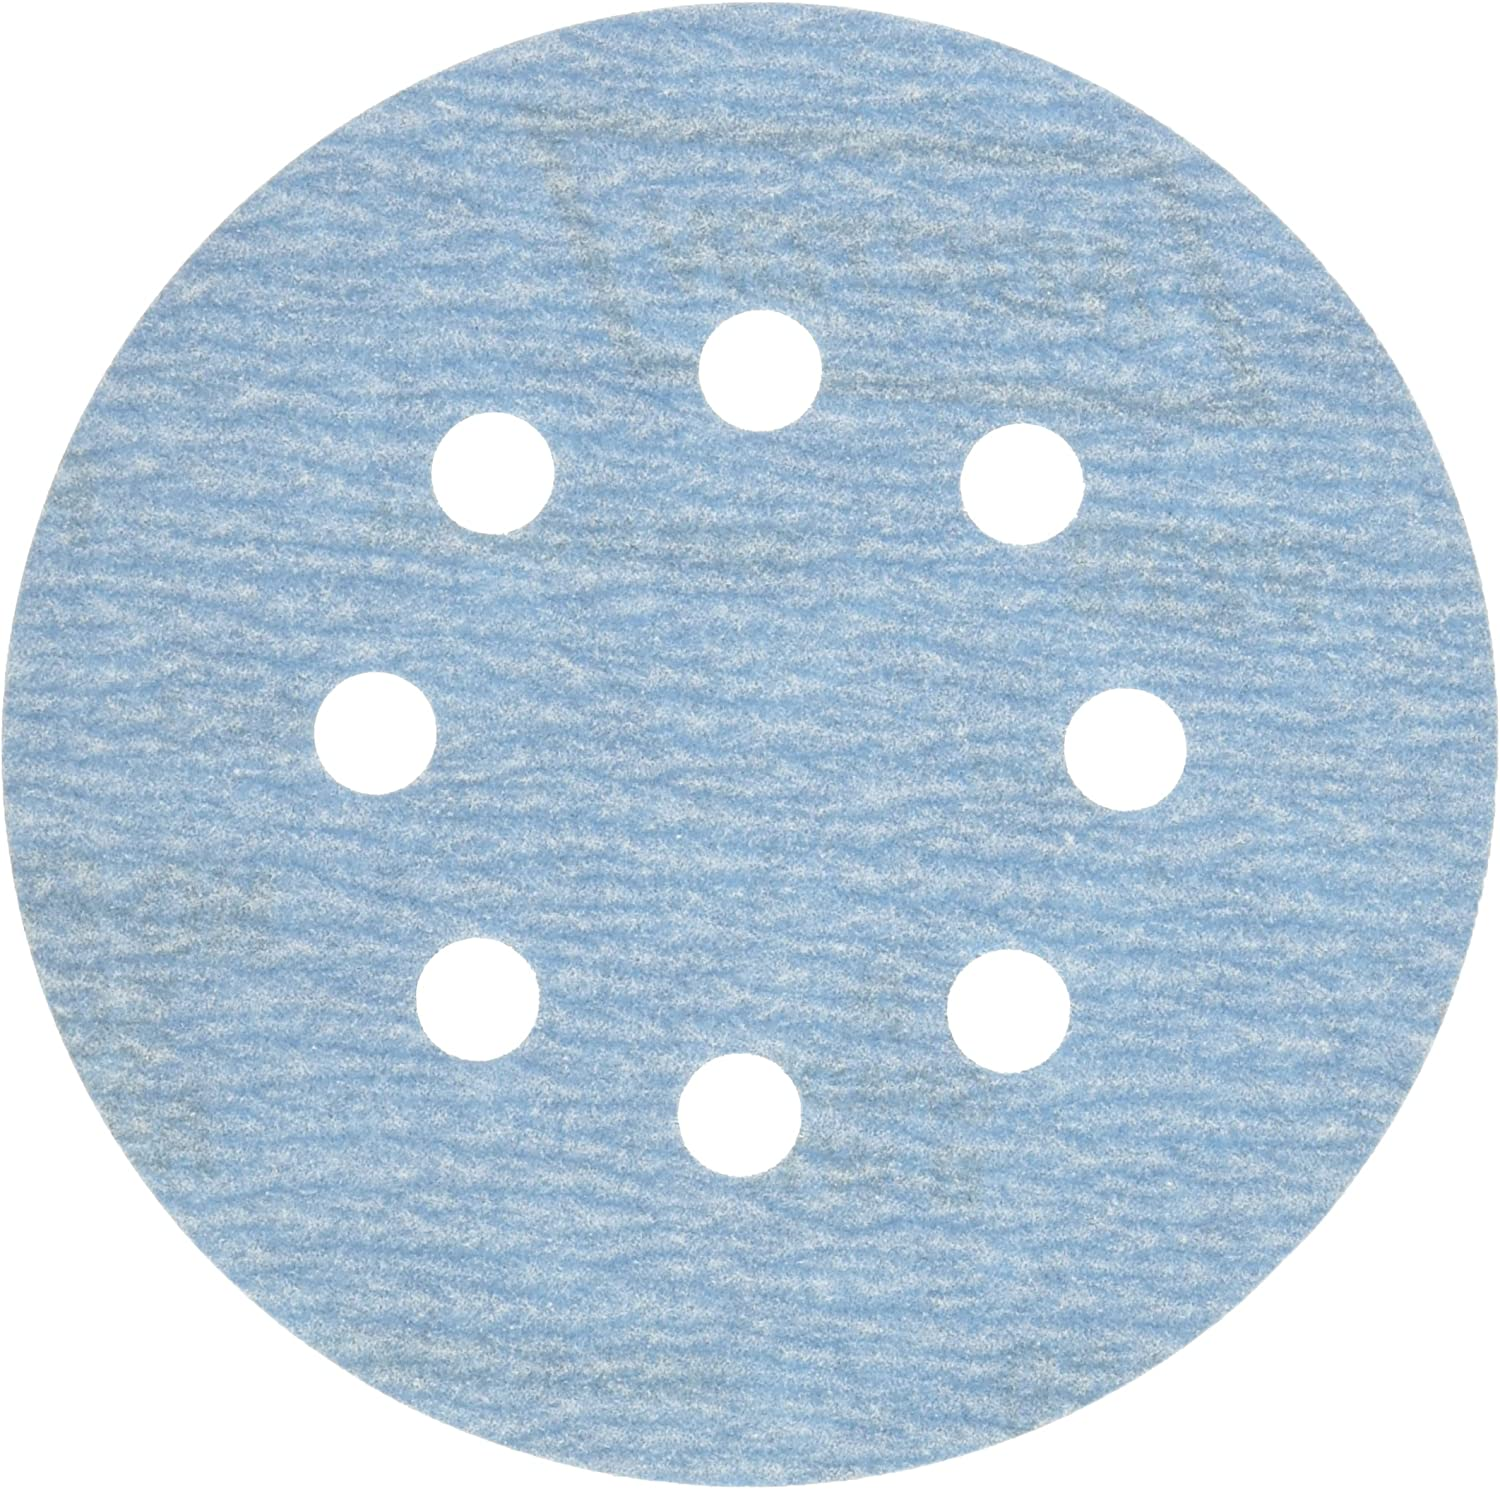 3 Pack ALI INDUSTRIES 50166-038 5 220G 8Hole Disc